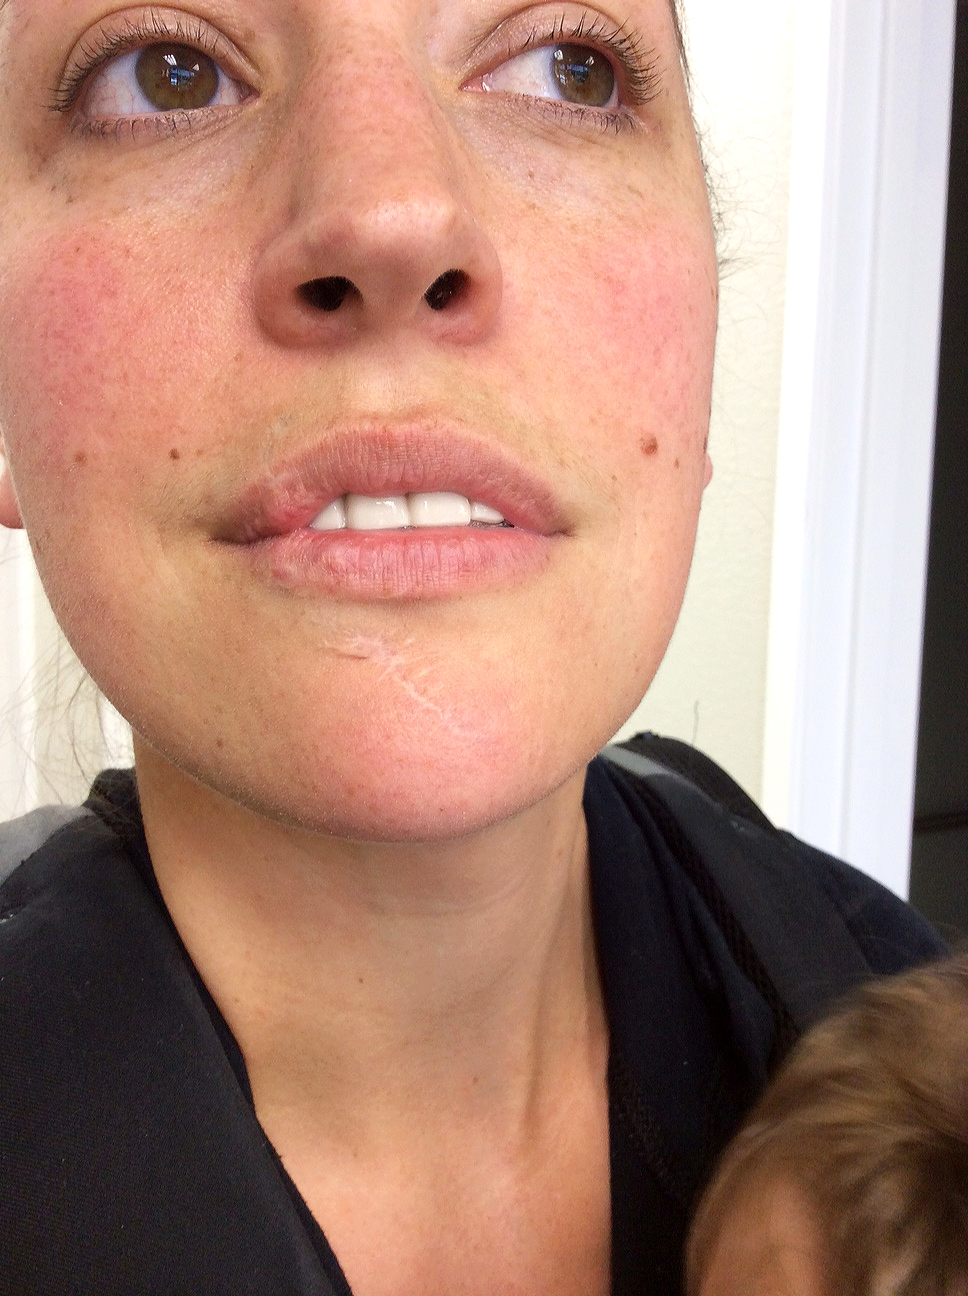 My chin scar, and rosacea before treatment.